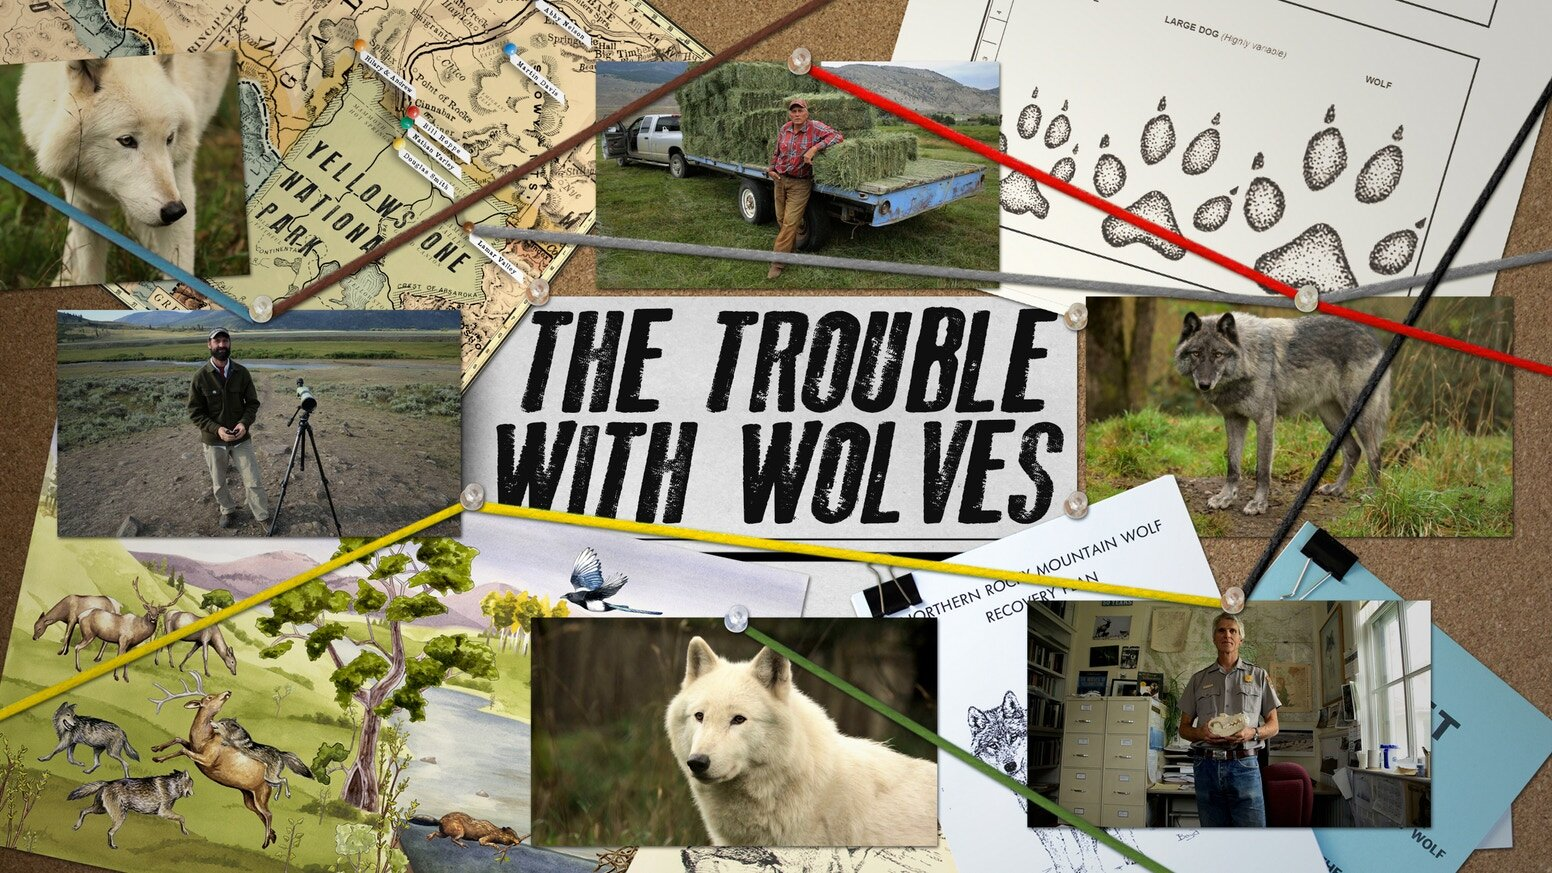 The Trouble With Wolves - Death threats, court battles, and an iconic endangered species in middle, THE TROUBLE WITH WOLVES takes an up-close look at the most heated and emotional wildlife conservation debate of our time. There's a reason wolves have been, and continue to be, the world's most controversial predator, but in these advanced times, can we not find a way coexist?